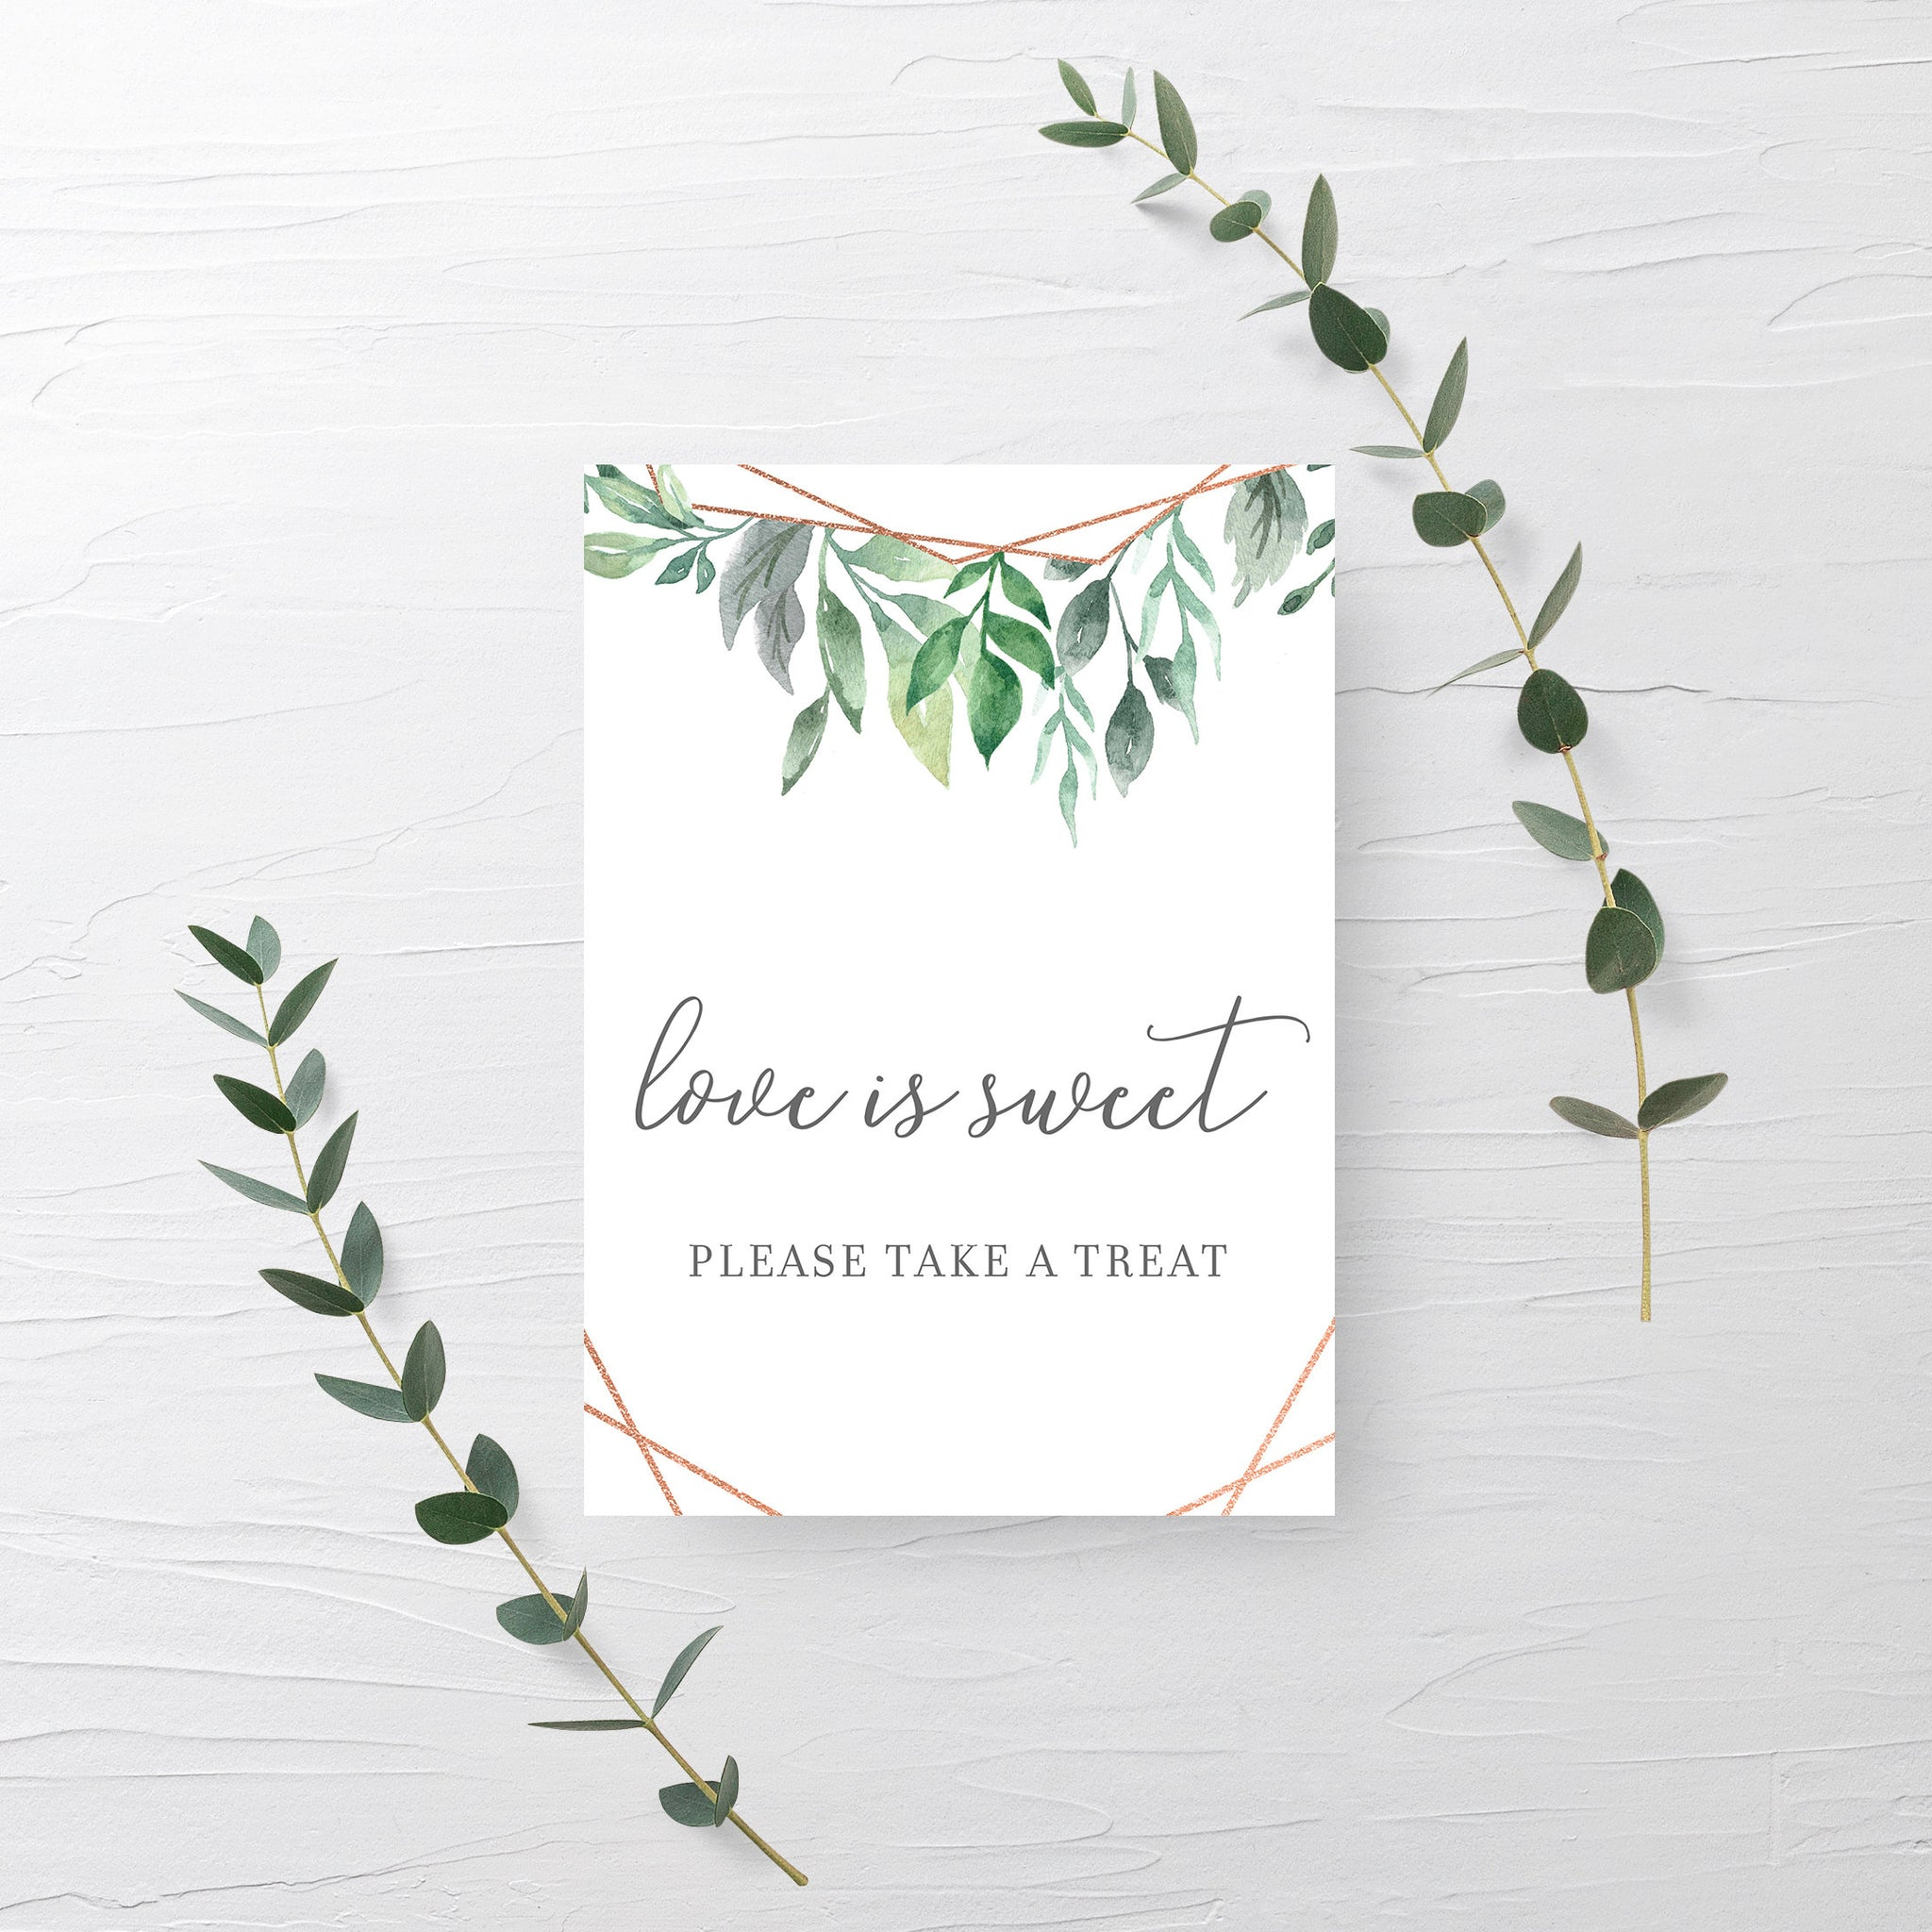 Geometric Rose Gold Greenery Printable Treat Sign, INSTANT DOWNLOAD, Wedding Bridal Shower Love Is Sweet Dessert Table Decorations - GFRG100 - @PlumPolkaDot